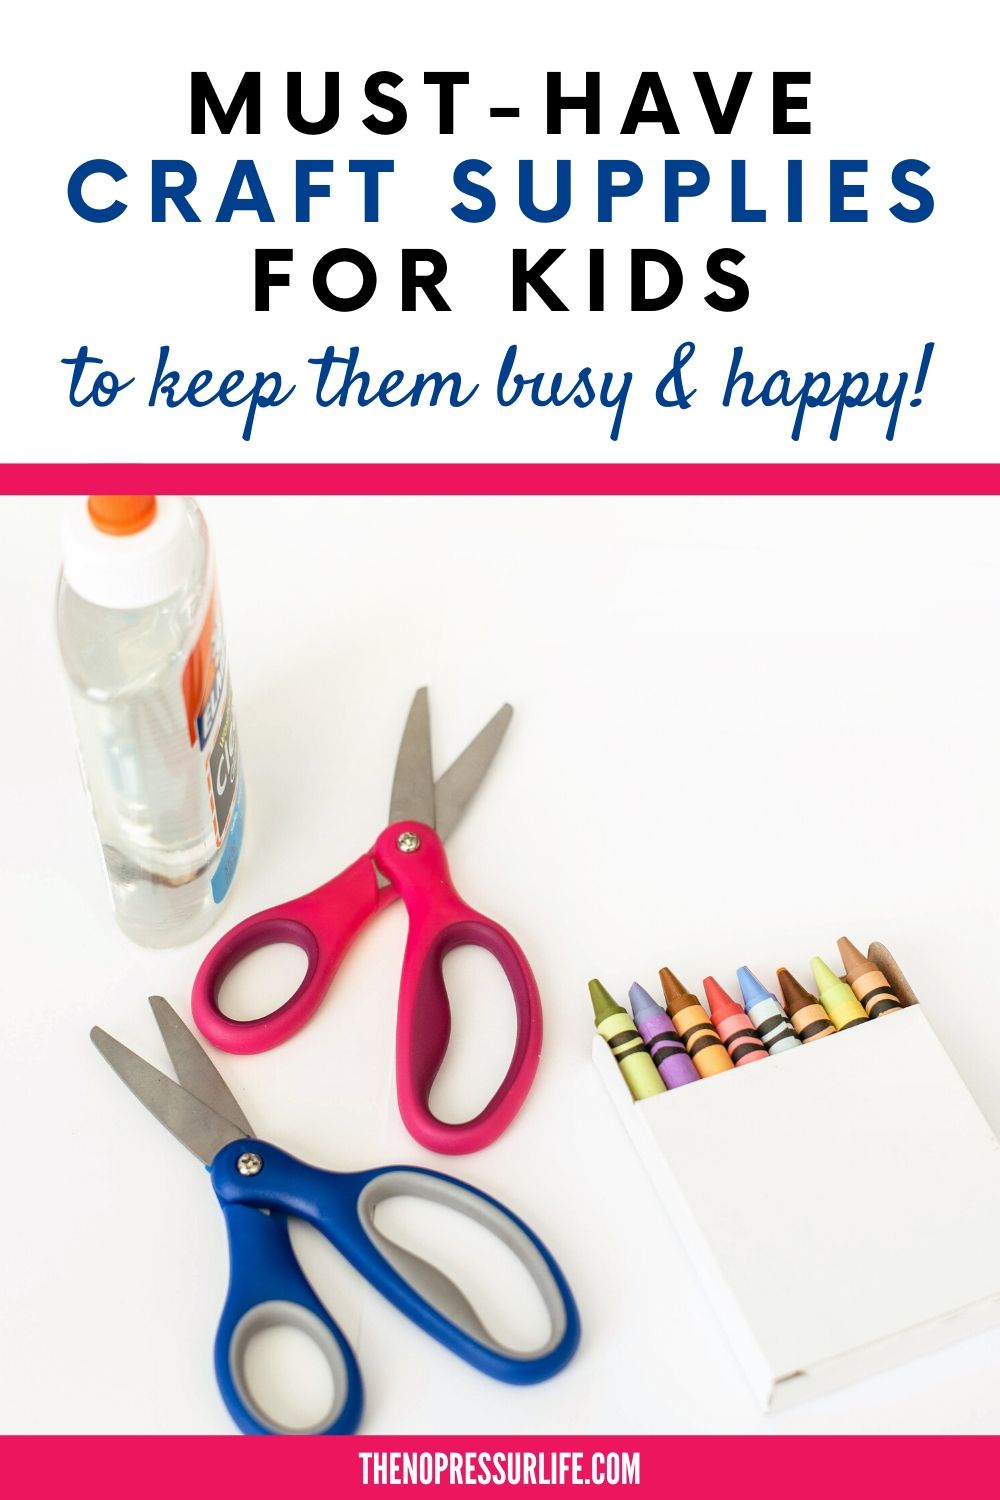 scissors and glue on white background with text: Must-Have Craft Supplies for Kids